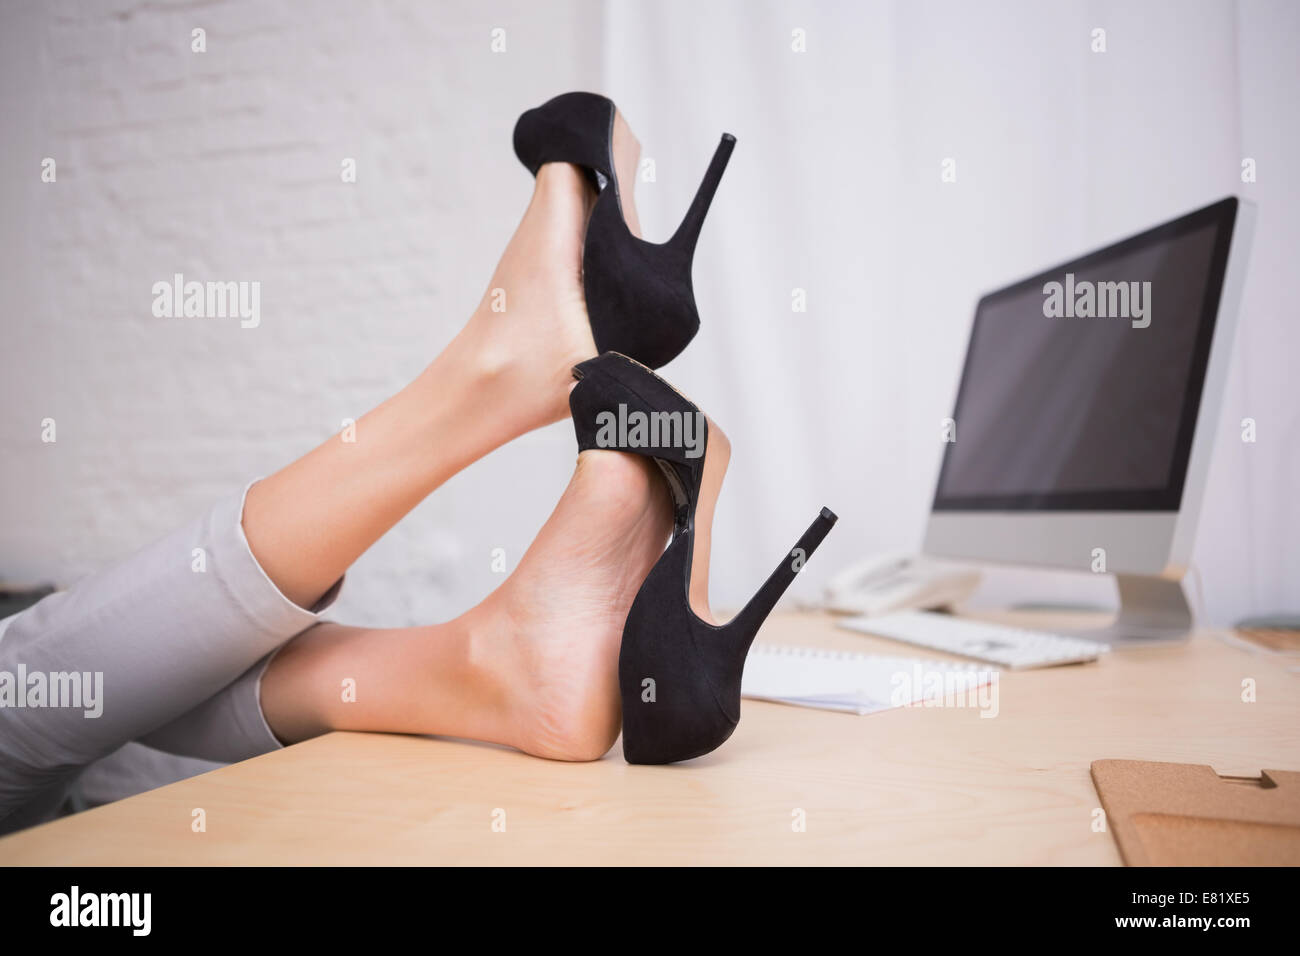 Businesswoman with high heels on desk - Stock Image